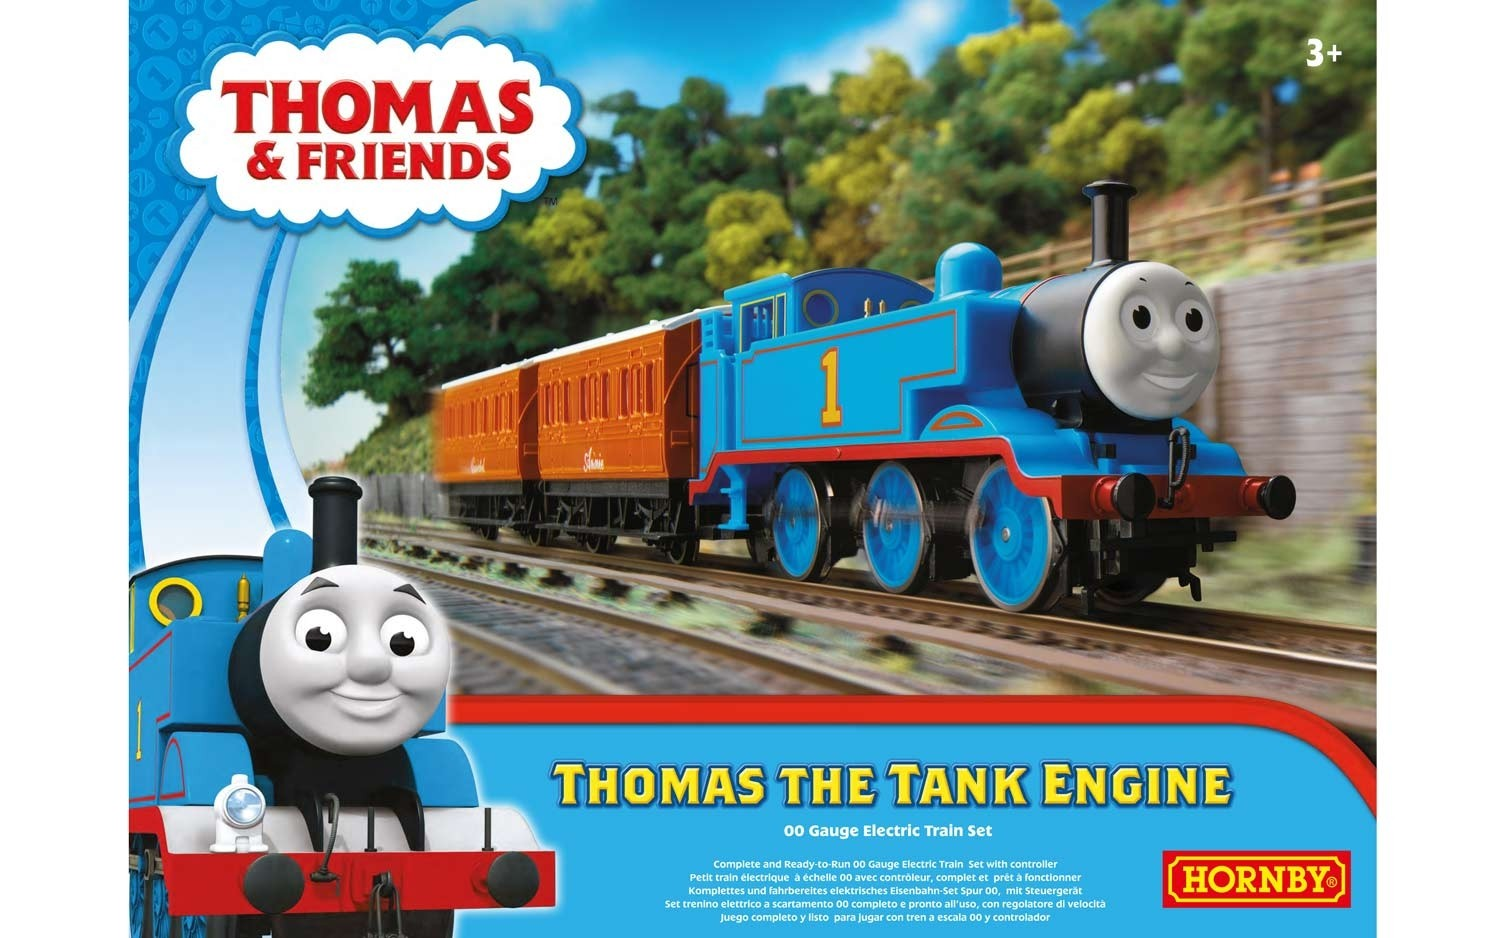 Hornby R9283 Thomas the Tank Engine set